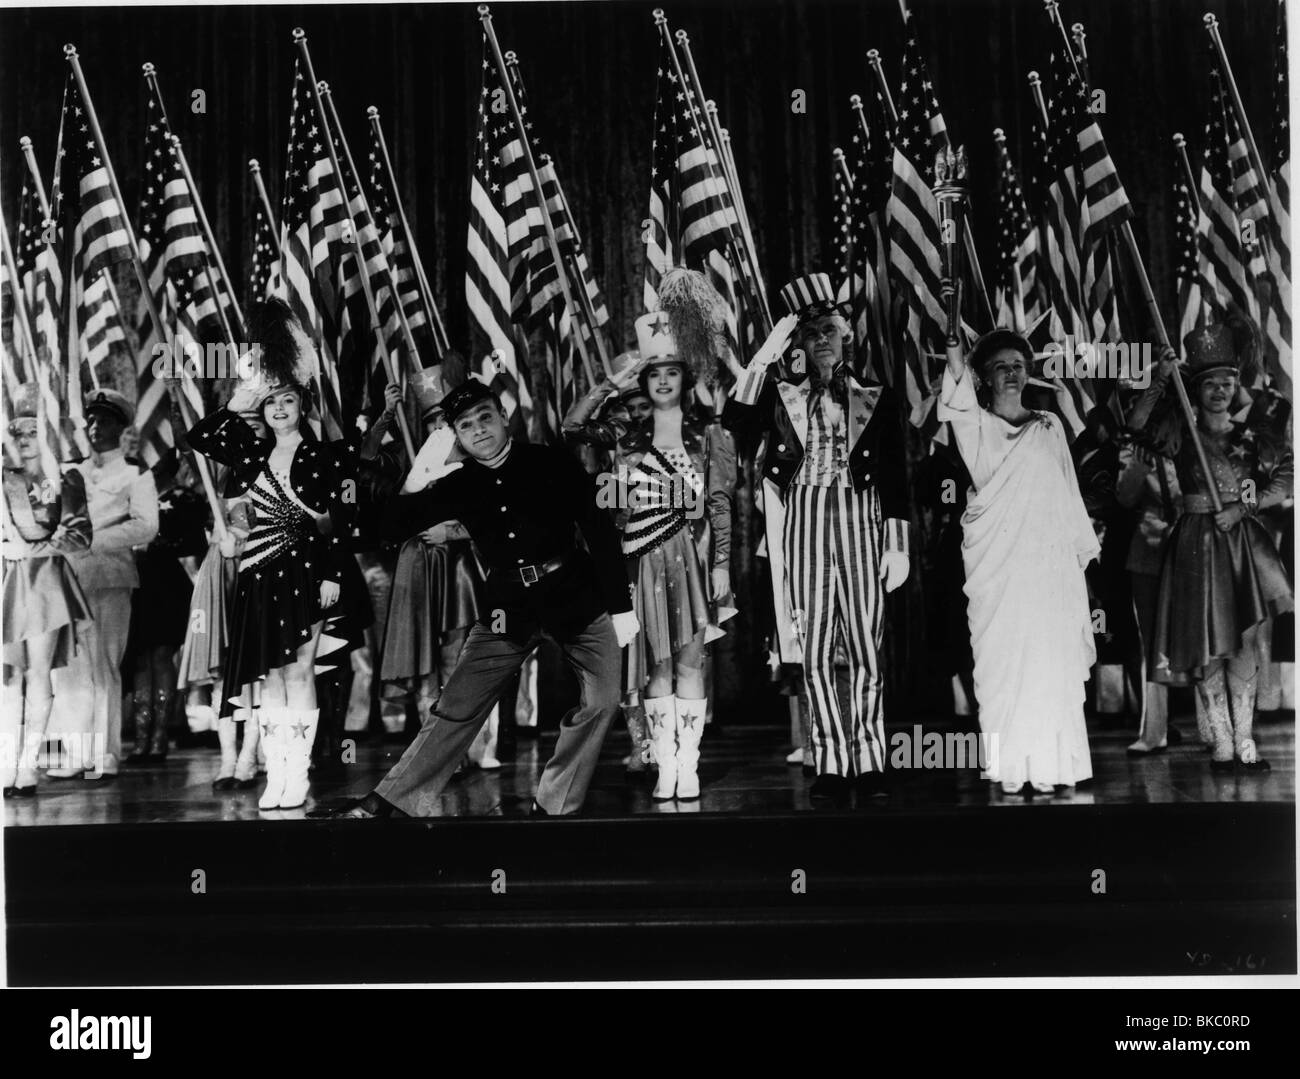 Yankee Doodle dandy(1942) James Cagney ydd 001p Foto Stock